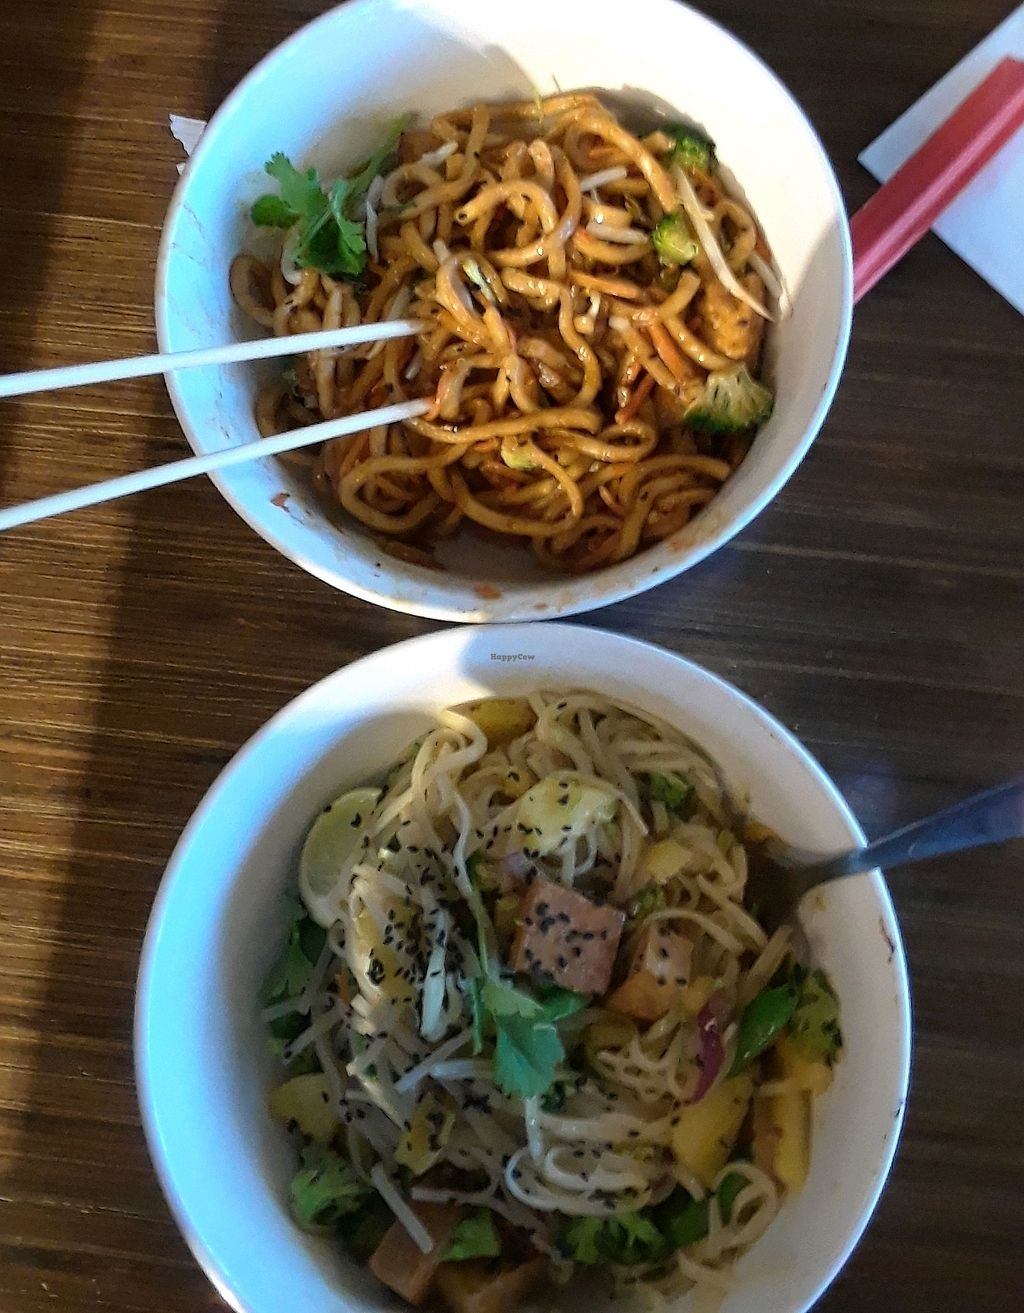 "Photo of Noodles and Company  by <a href=""/members/profile/RosieTheVegan"">RosieTheVegan</a> <br/>Japanese Pan Noodles and Thai Curry <br/> April 5, 2018  - <a href='/contact/abuse/image/116568/381157'>Report</a>"